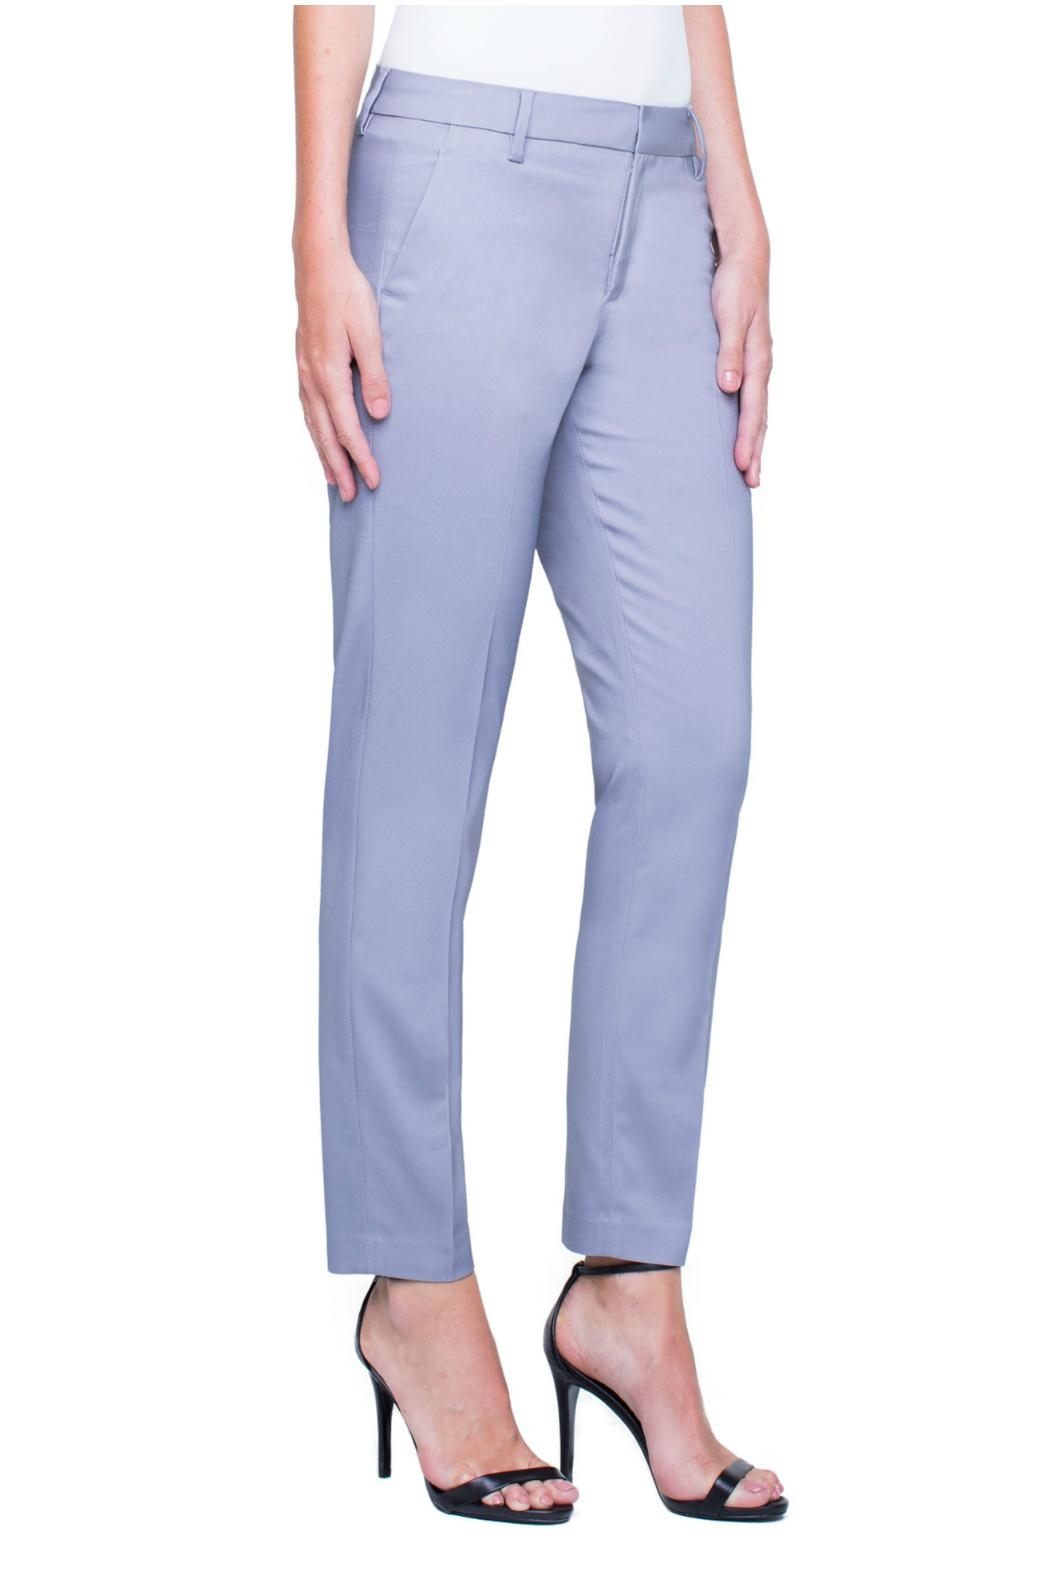 Liverpool Stretchy Trouser Pants - Main Image